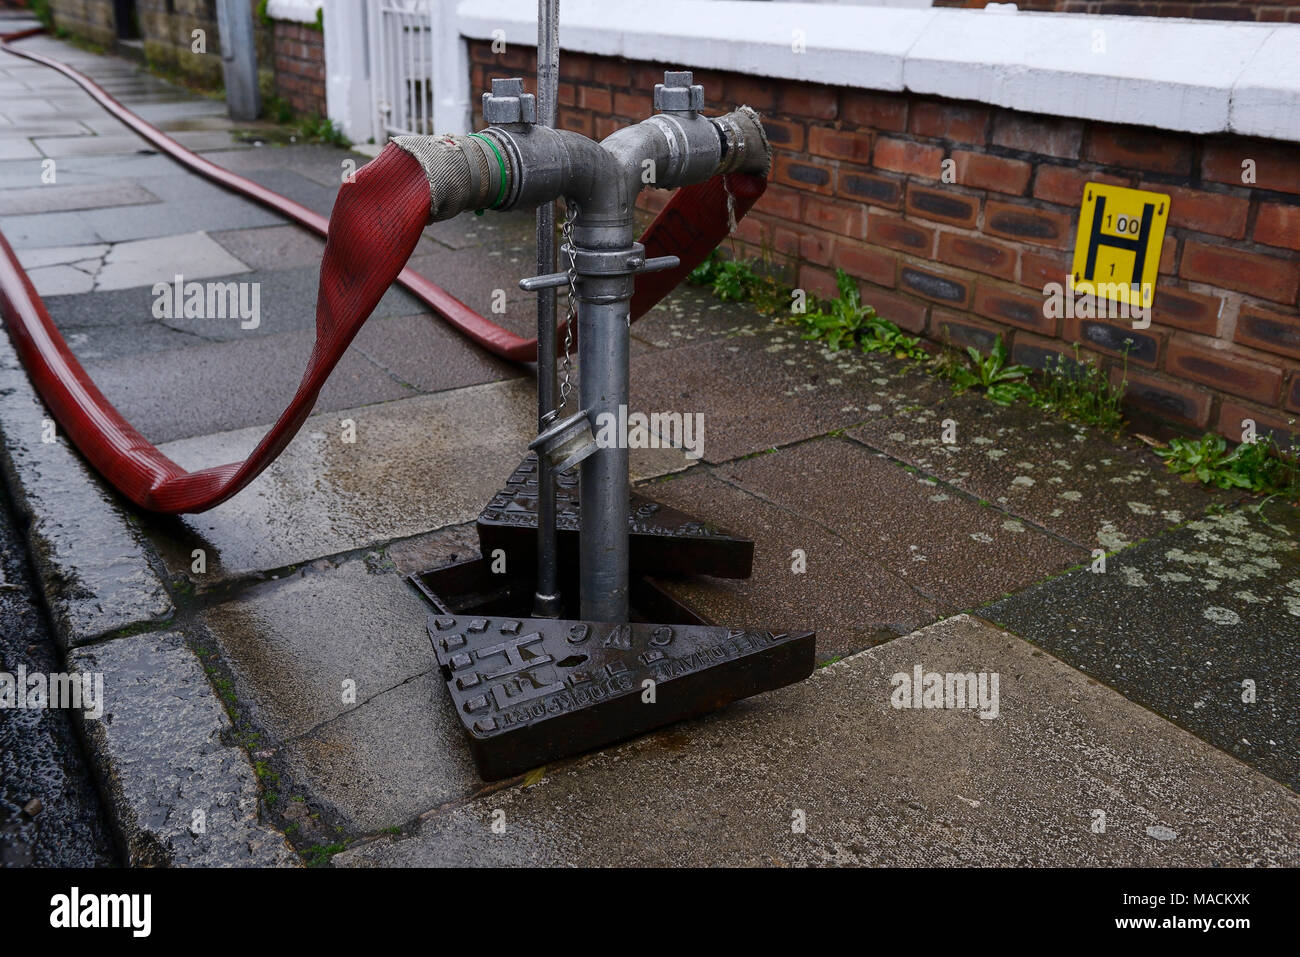 A fire hydrant in the pavement with hoses attached - Stock Image